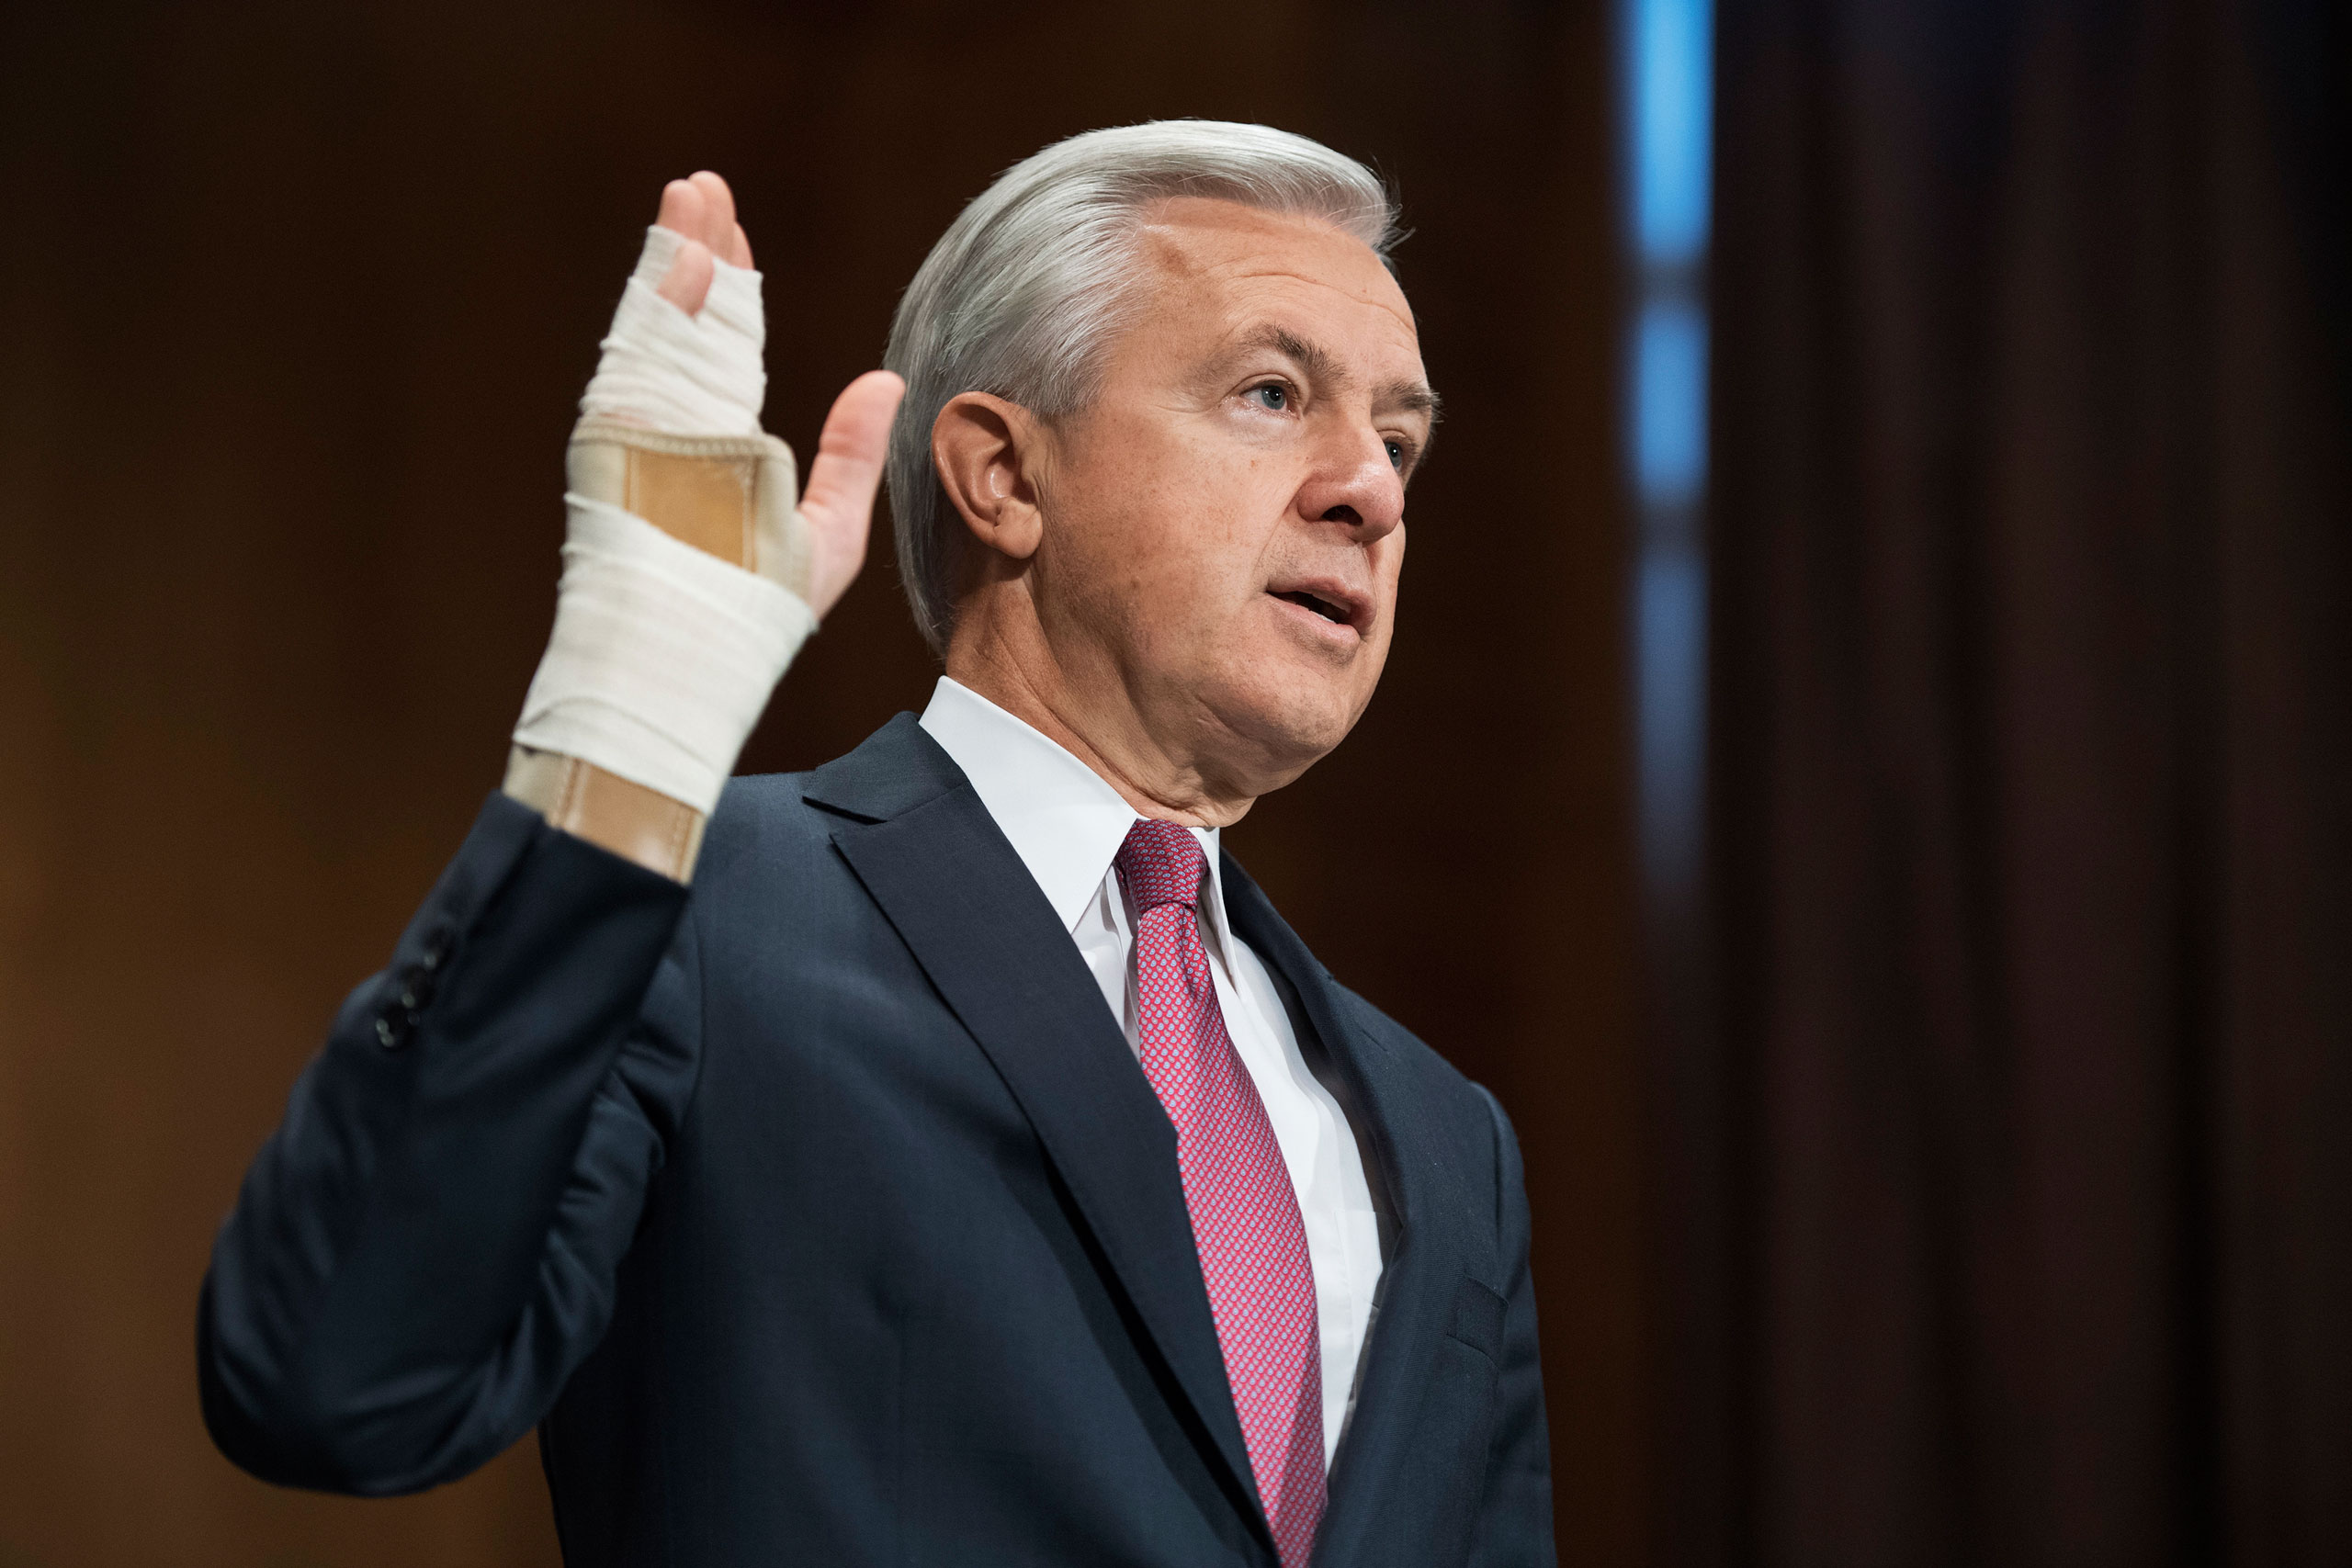 'I am deeply sorry that we failed to fulfill our responsibility,' said John Stumpf, chairman and CEO of Wells Fargo, in a Senate hearing on its massive, multiyear customer fraud